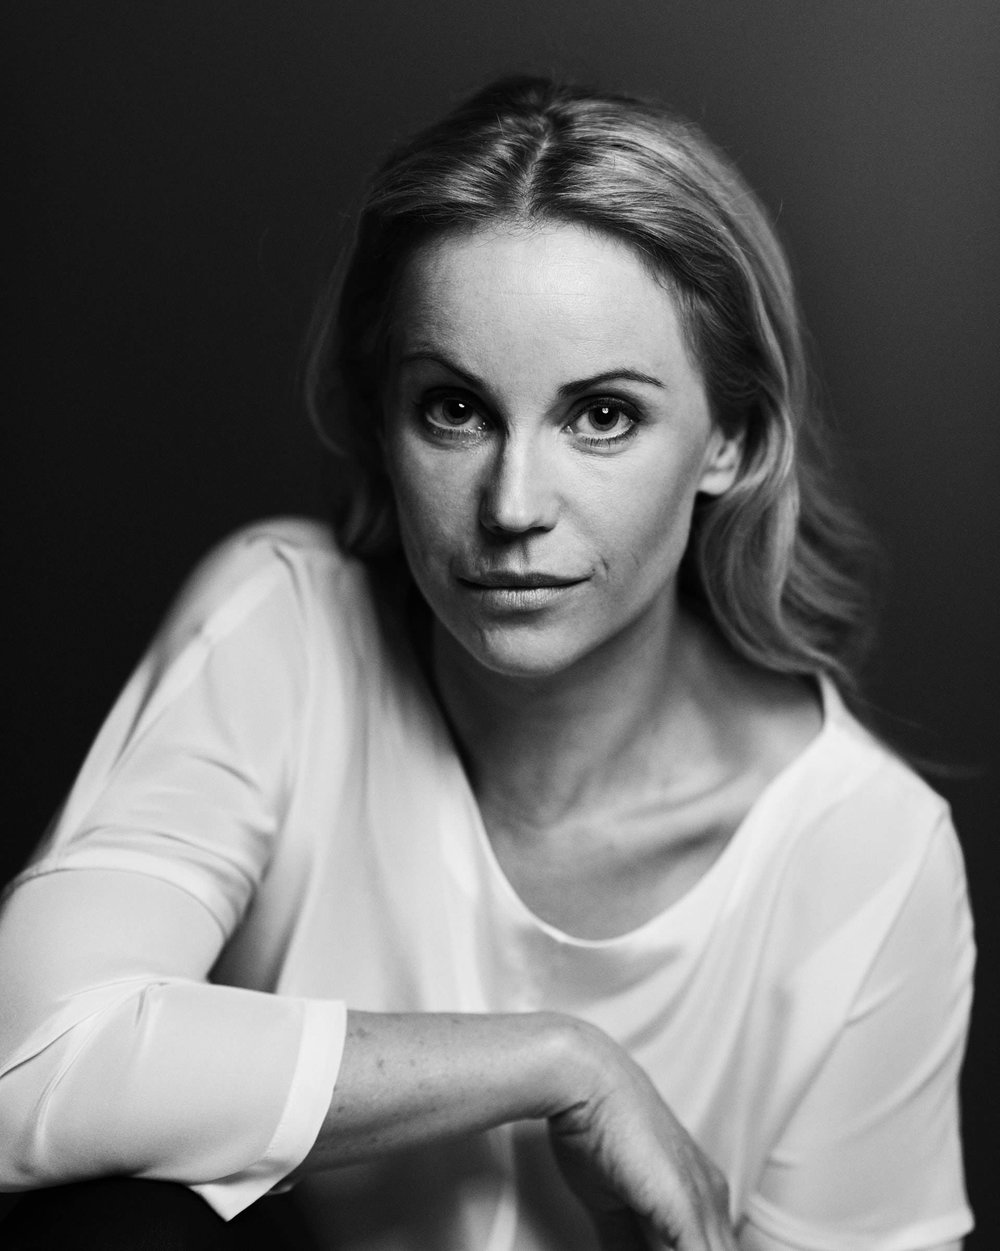 Portfolio_475_Portrait of Sofia Helin_by_KRISTOFER SAMUELSSON PHOTOGRAPHY.jpg